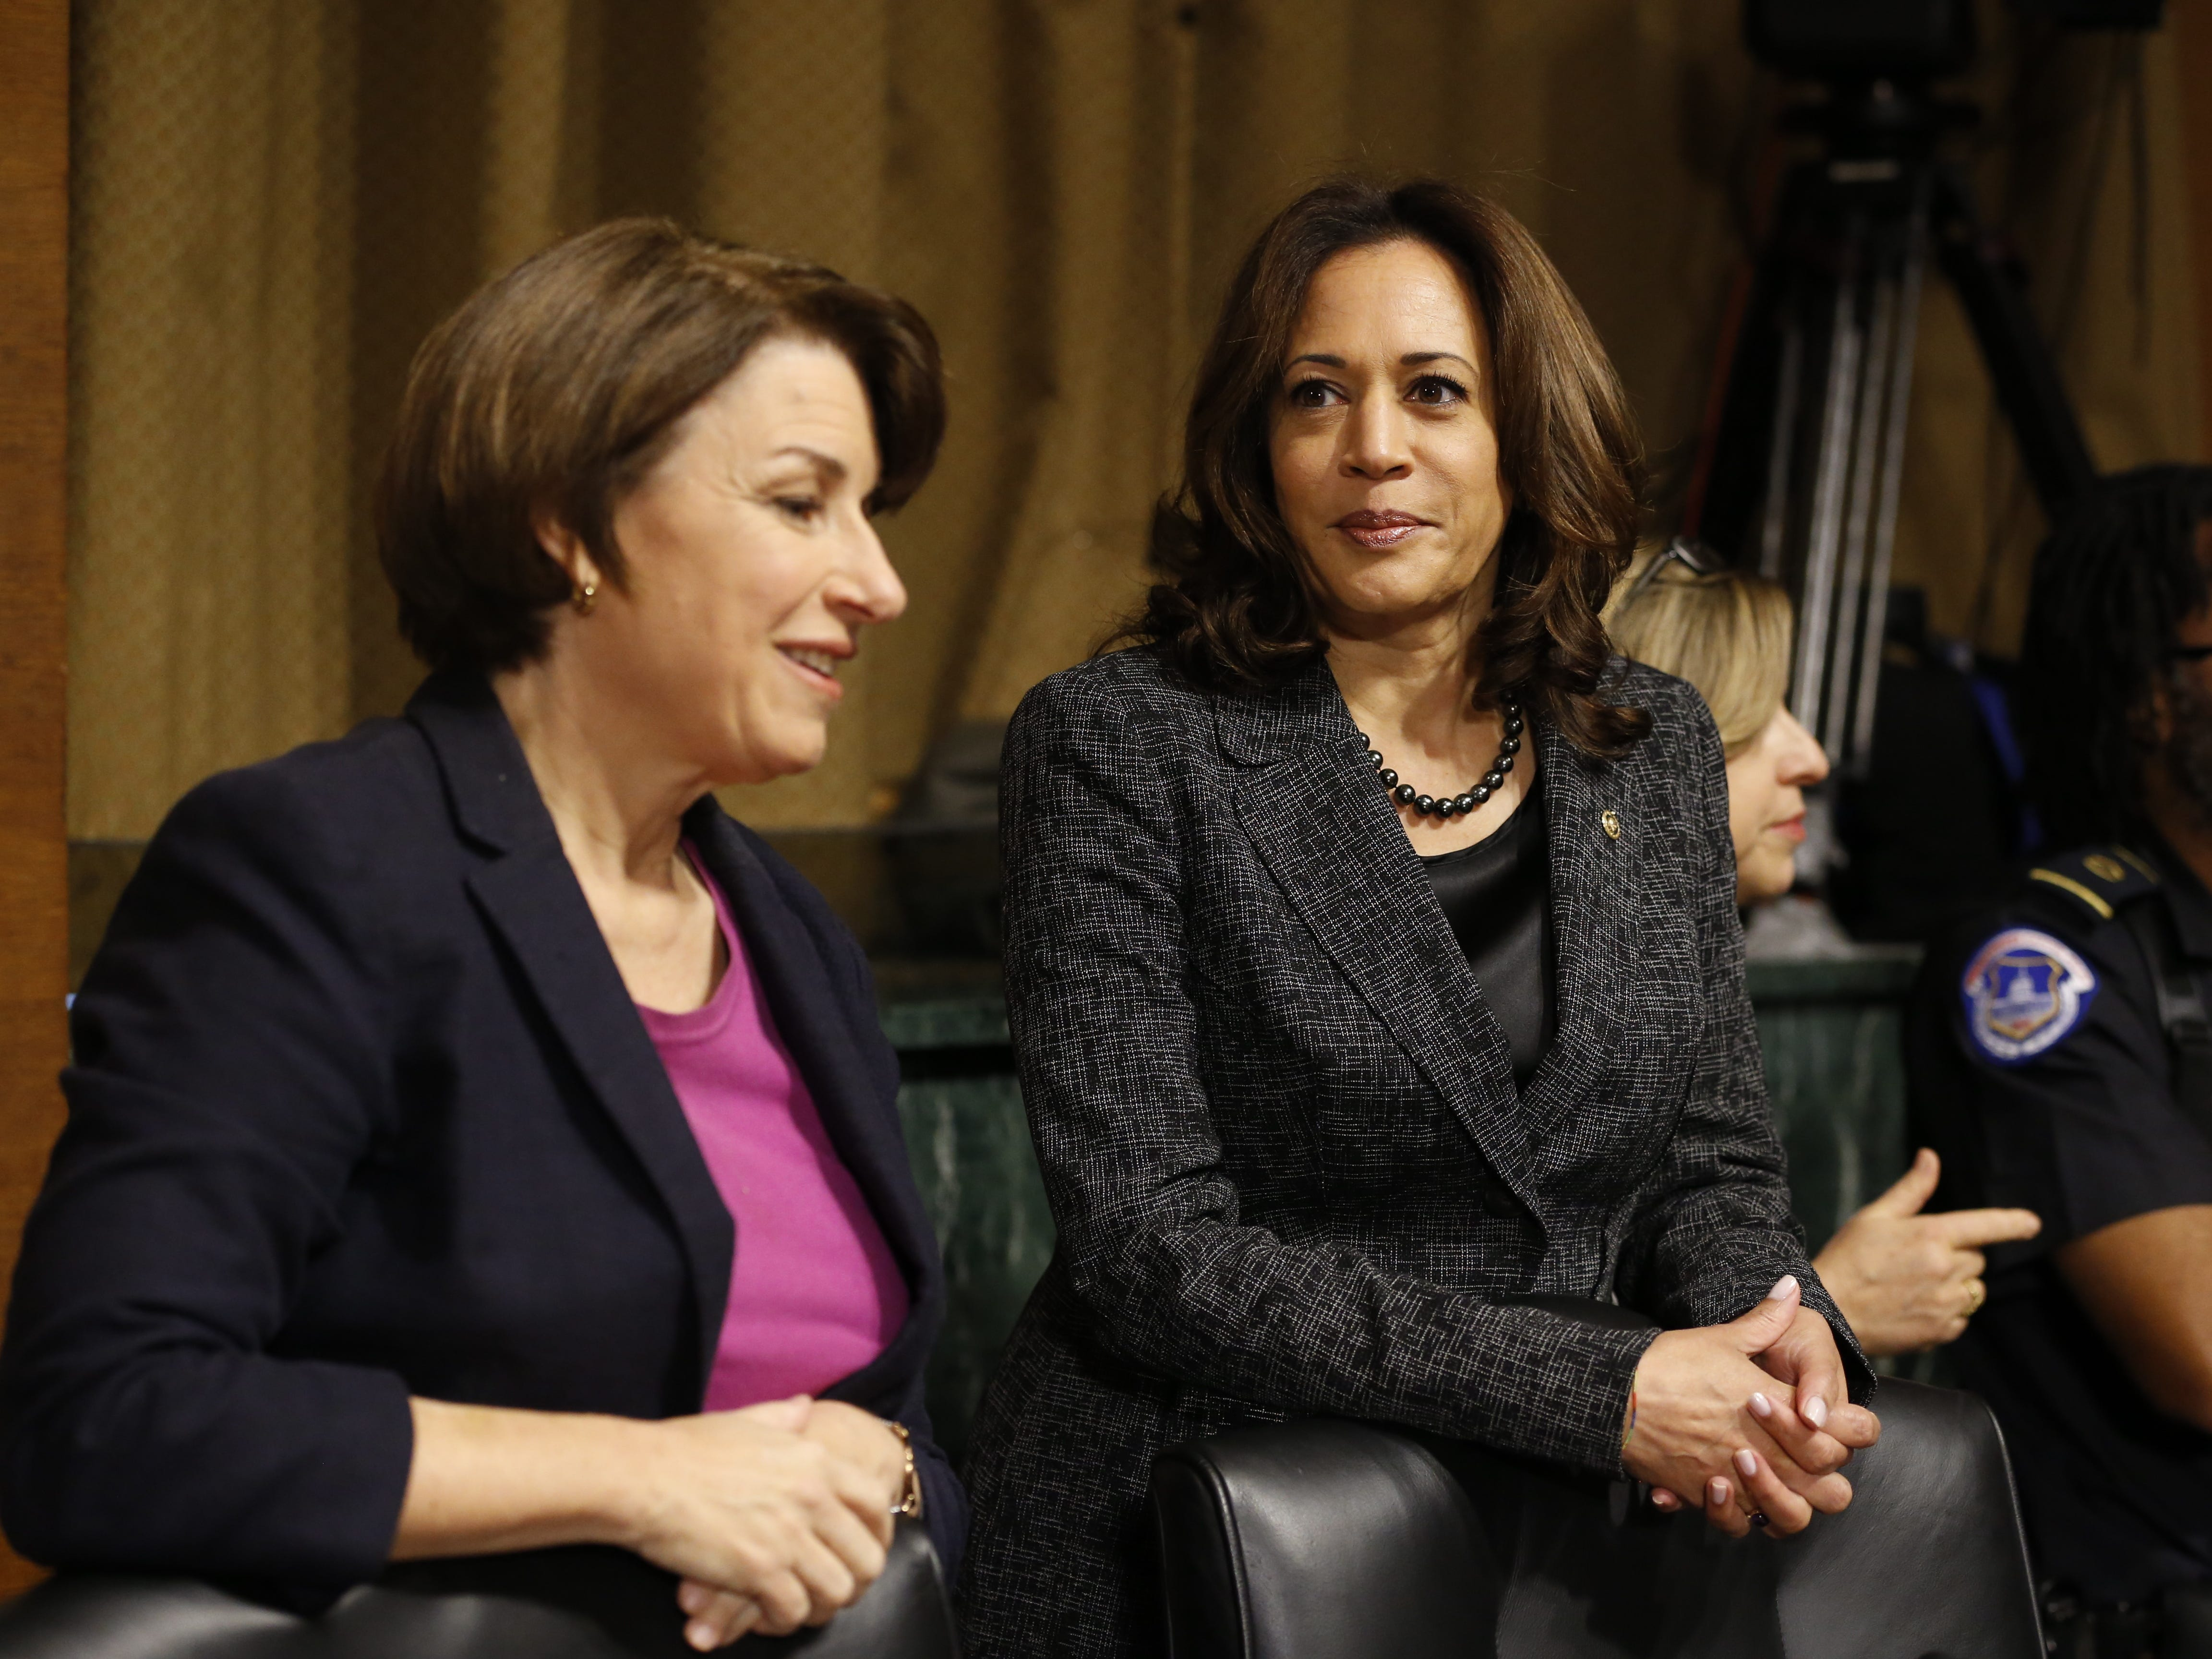 epa07051027 Senators Amy Klobuchar (D-MN)  and Kamala Harris (D-CA) speak before the  Senate Judiciary Committee hearing on the nomination of Brett Kavanaugh to be an associate justice of the Supreme Court of the United States, on Capitol Hill in Washington, DC, USA, 27 September 2018. US President Donald J. Trump's nominee to be a US Supreme Court associate justice Brett Kavanaugh is in a tumultuous confirmation process as multiple women have accused Kavanaugh of sexual misconduct.  EPA-EFE/MICHAEL REYNOLDS ORG XMIT: MRX05